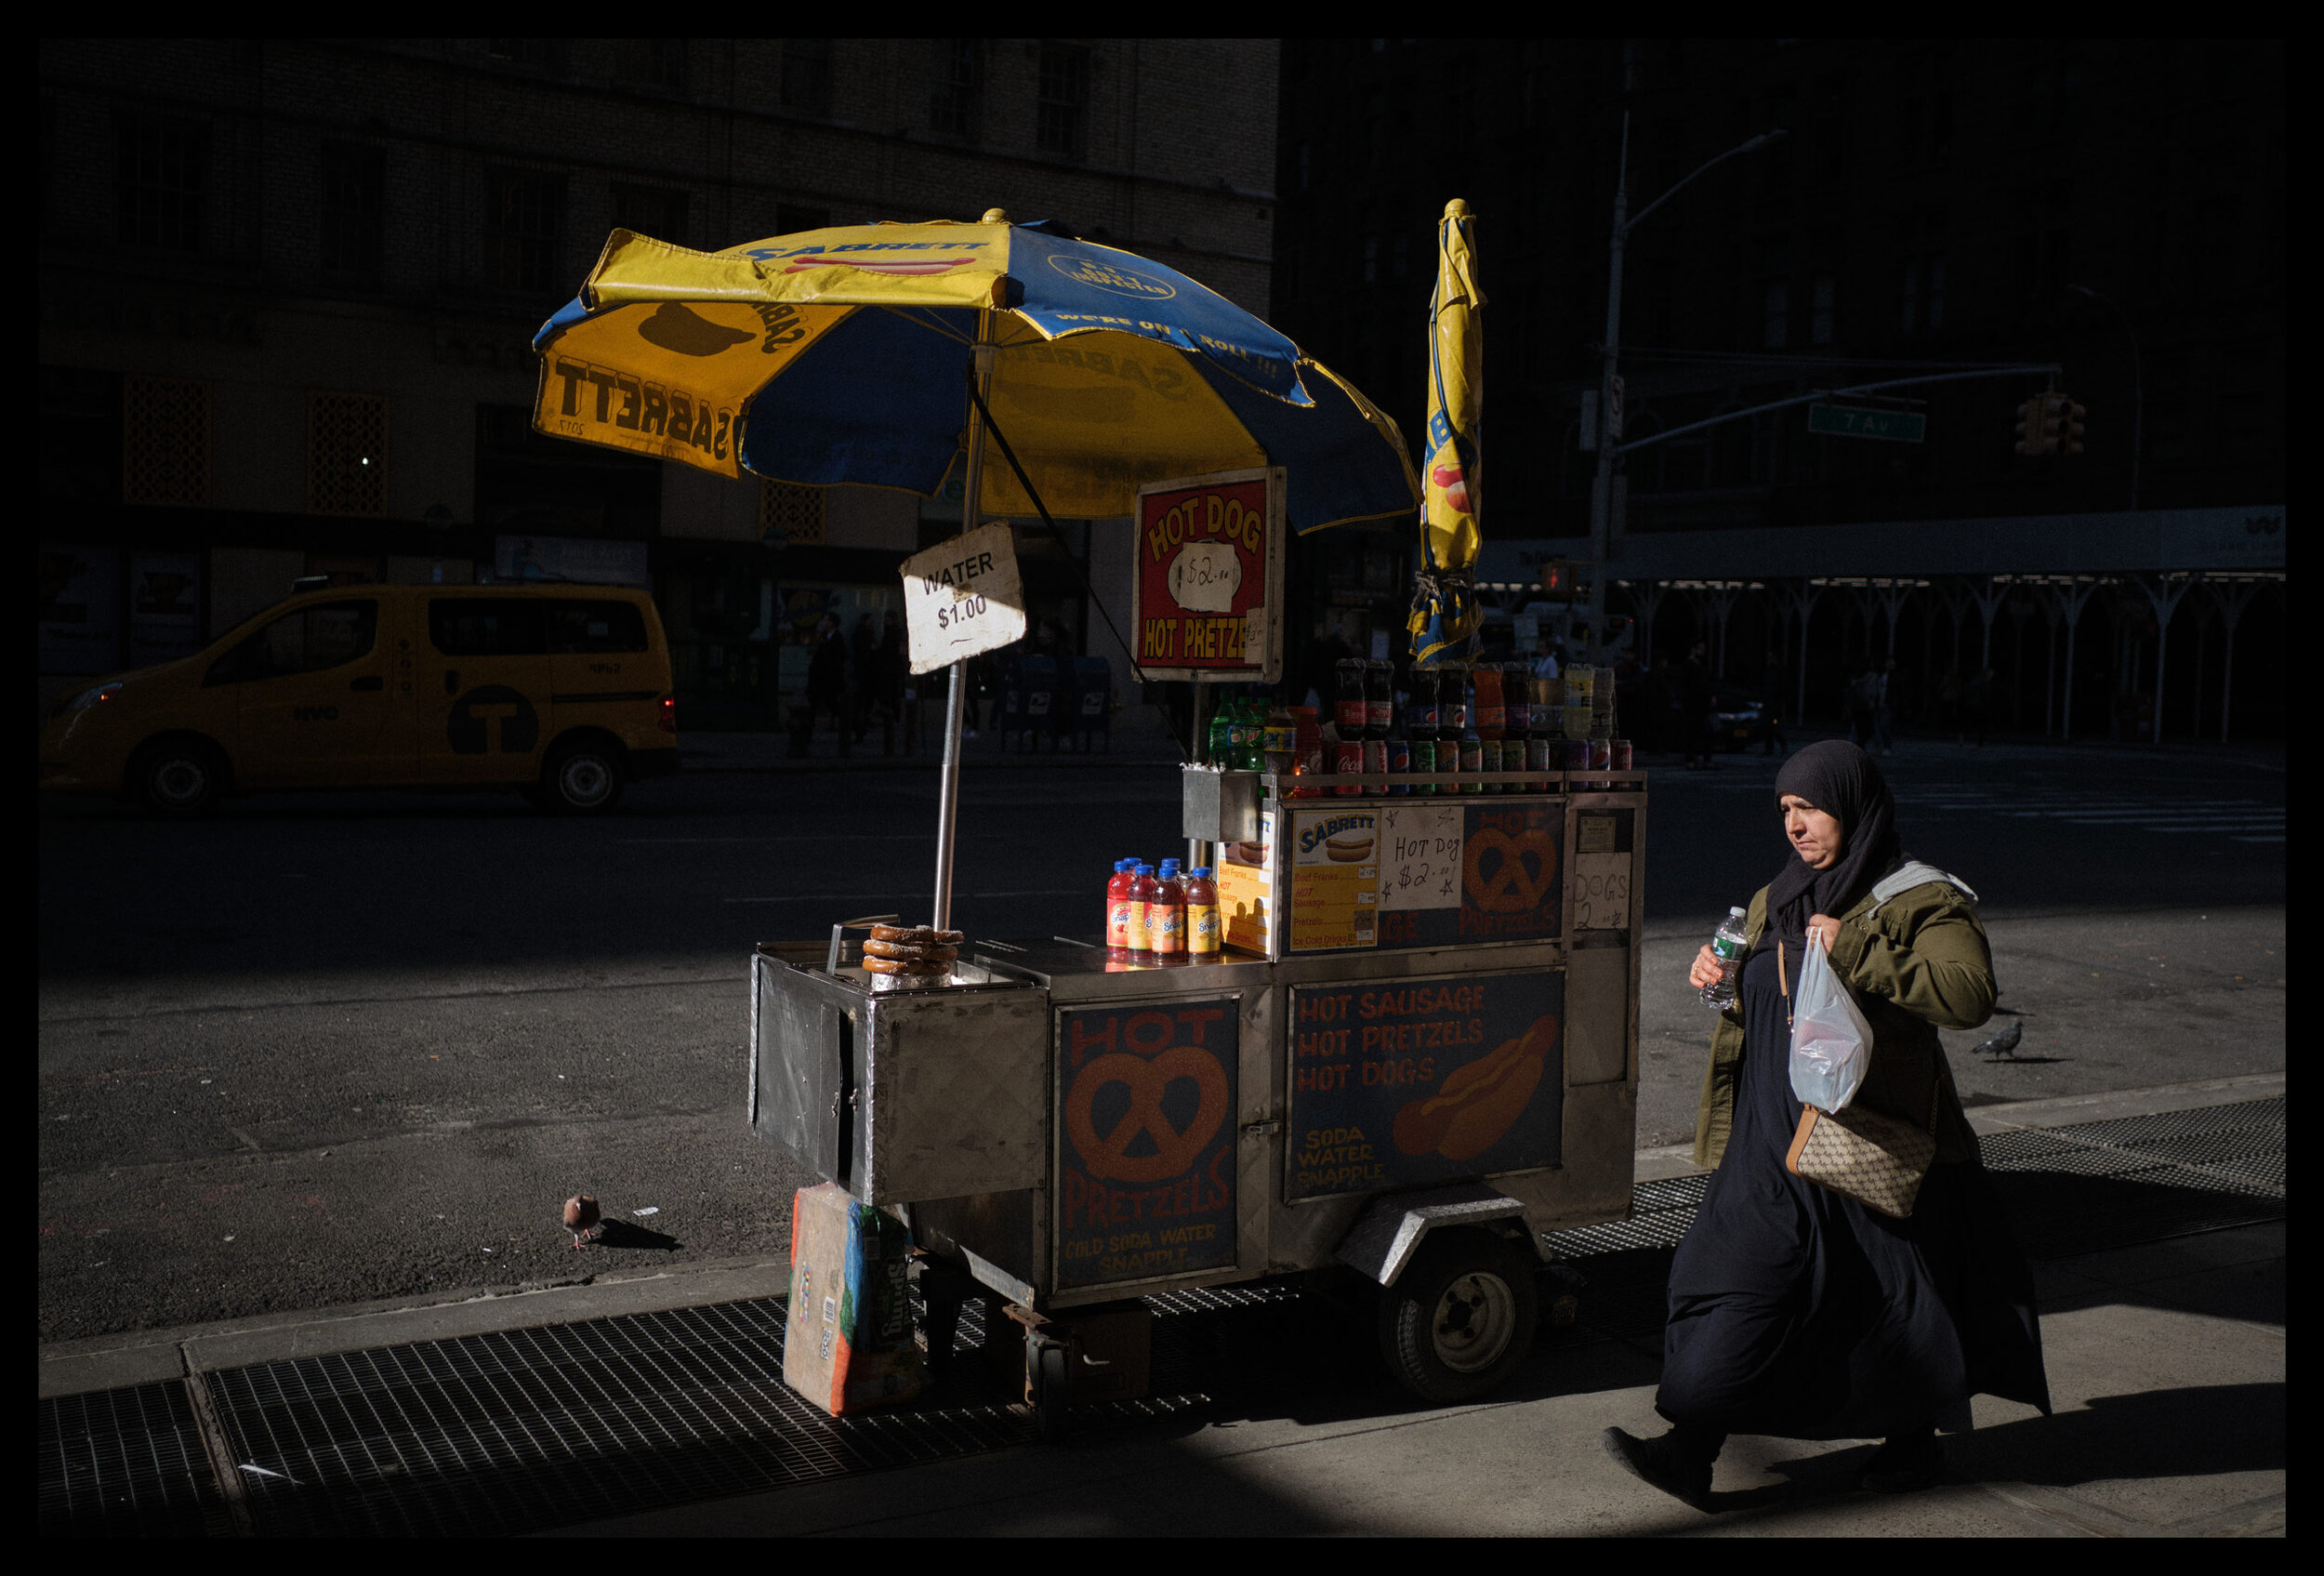 6th Ave Food Cart